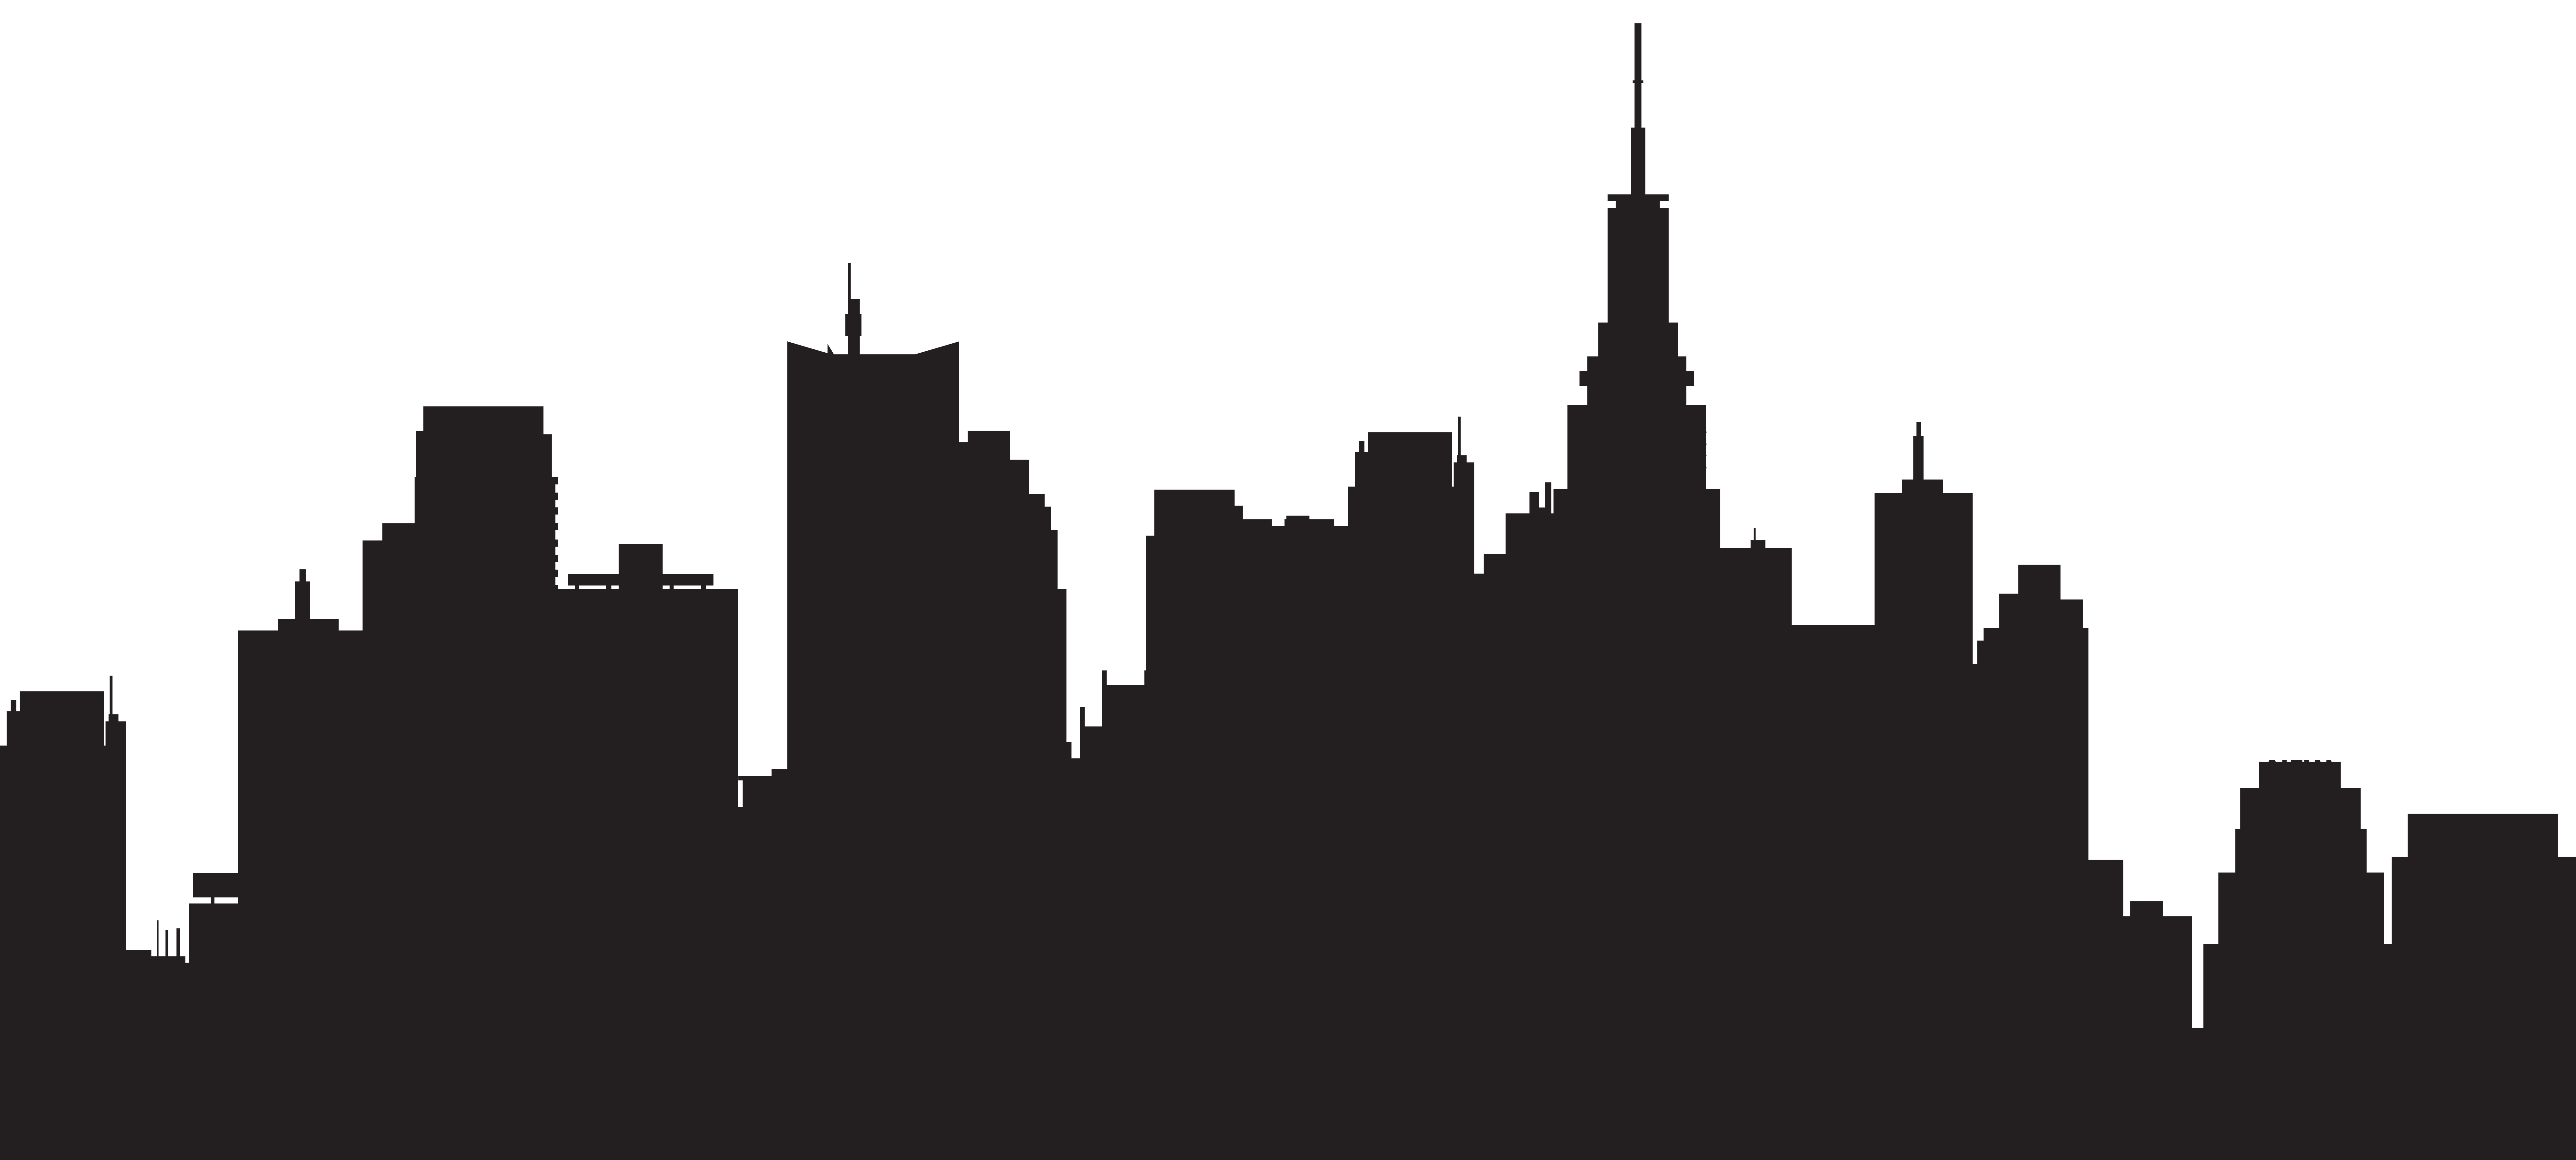 City Skyline Silhouette Png Free City Skyline Silhouette Png Transparent Images 72295 Pngio